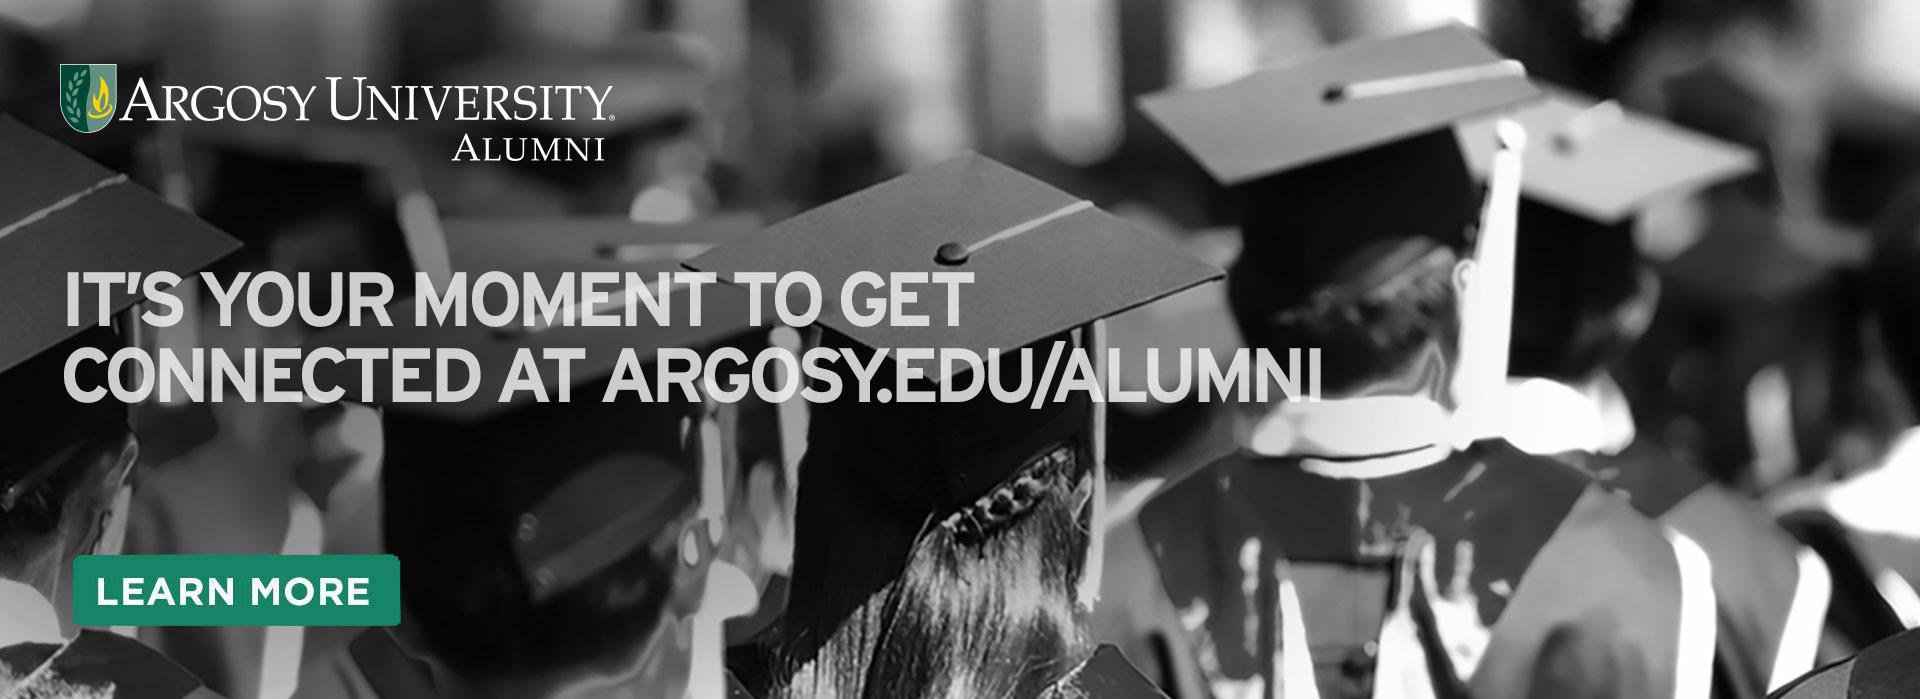 Learn About Argosy University Alumni